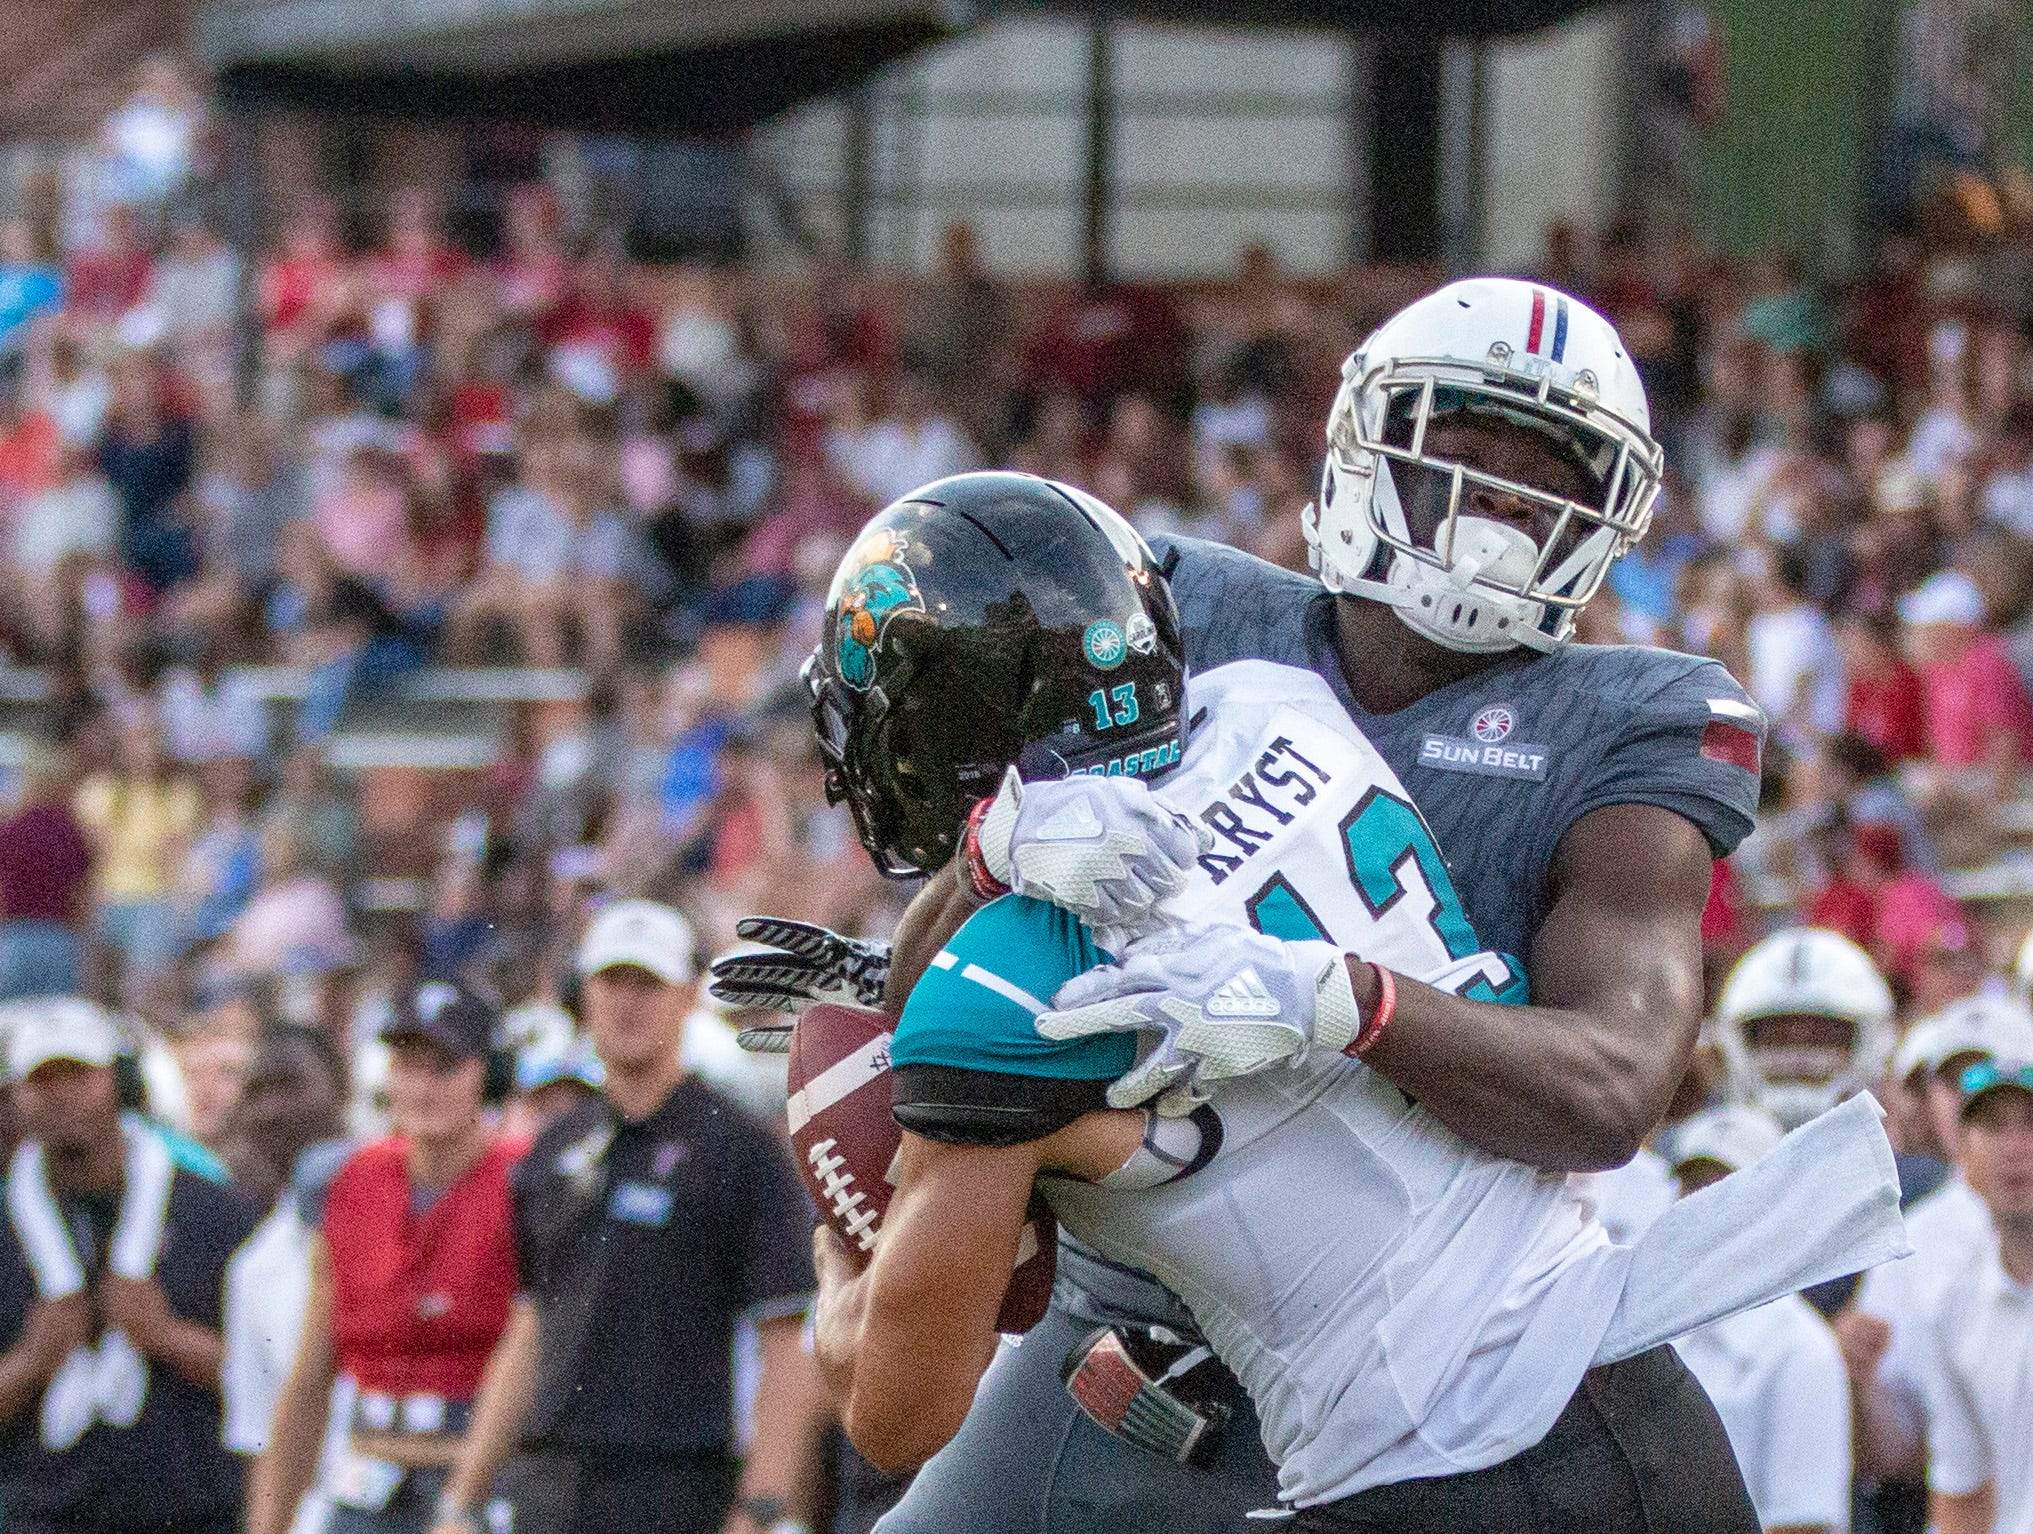 Troy's Demontrez Brown grabs Coastal Carolina's Chandler Kryst after he intercepts the ball late in the fourth quarter.